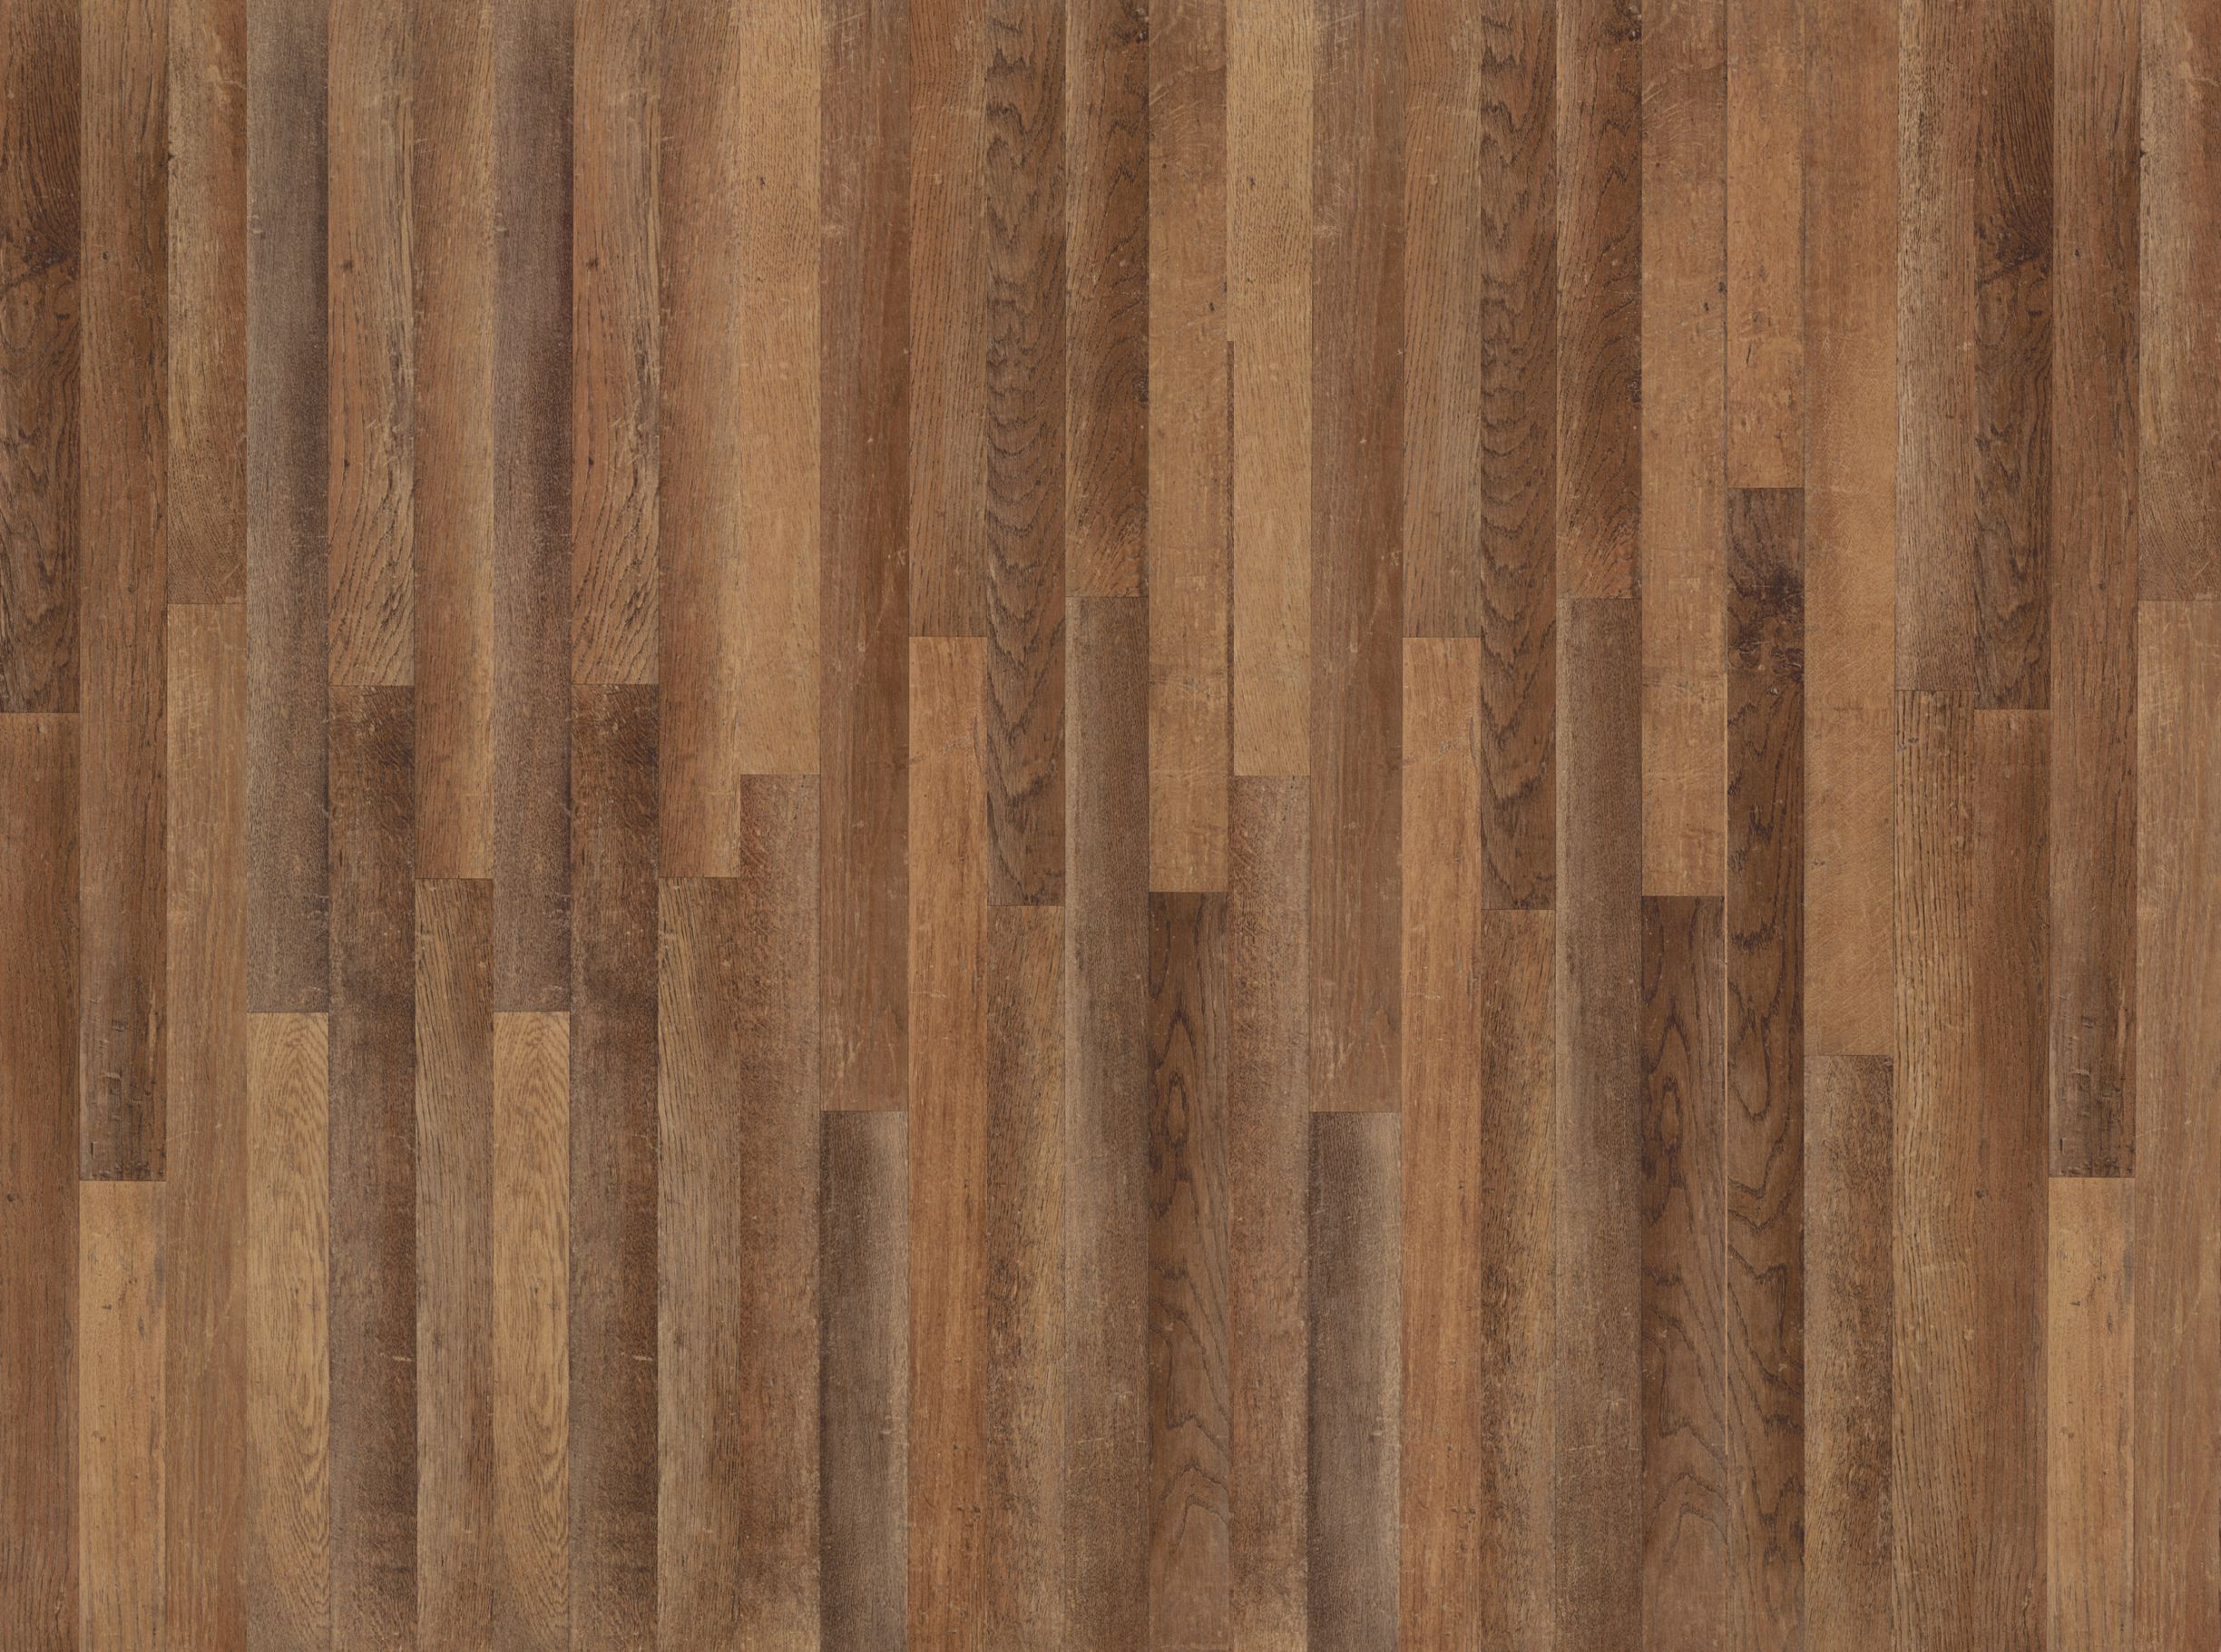 Bamboo hardwood flooring glossy brown linoleum flooring for Wooden floor lino